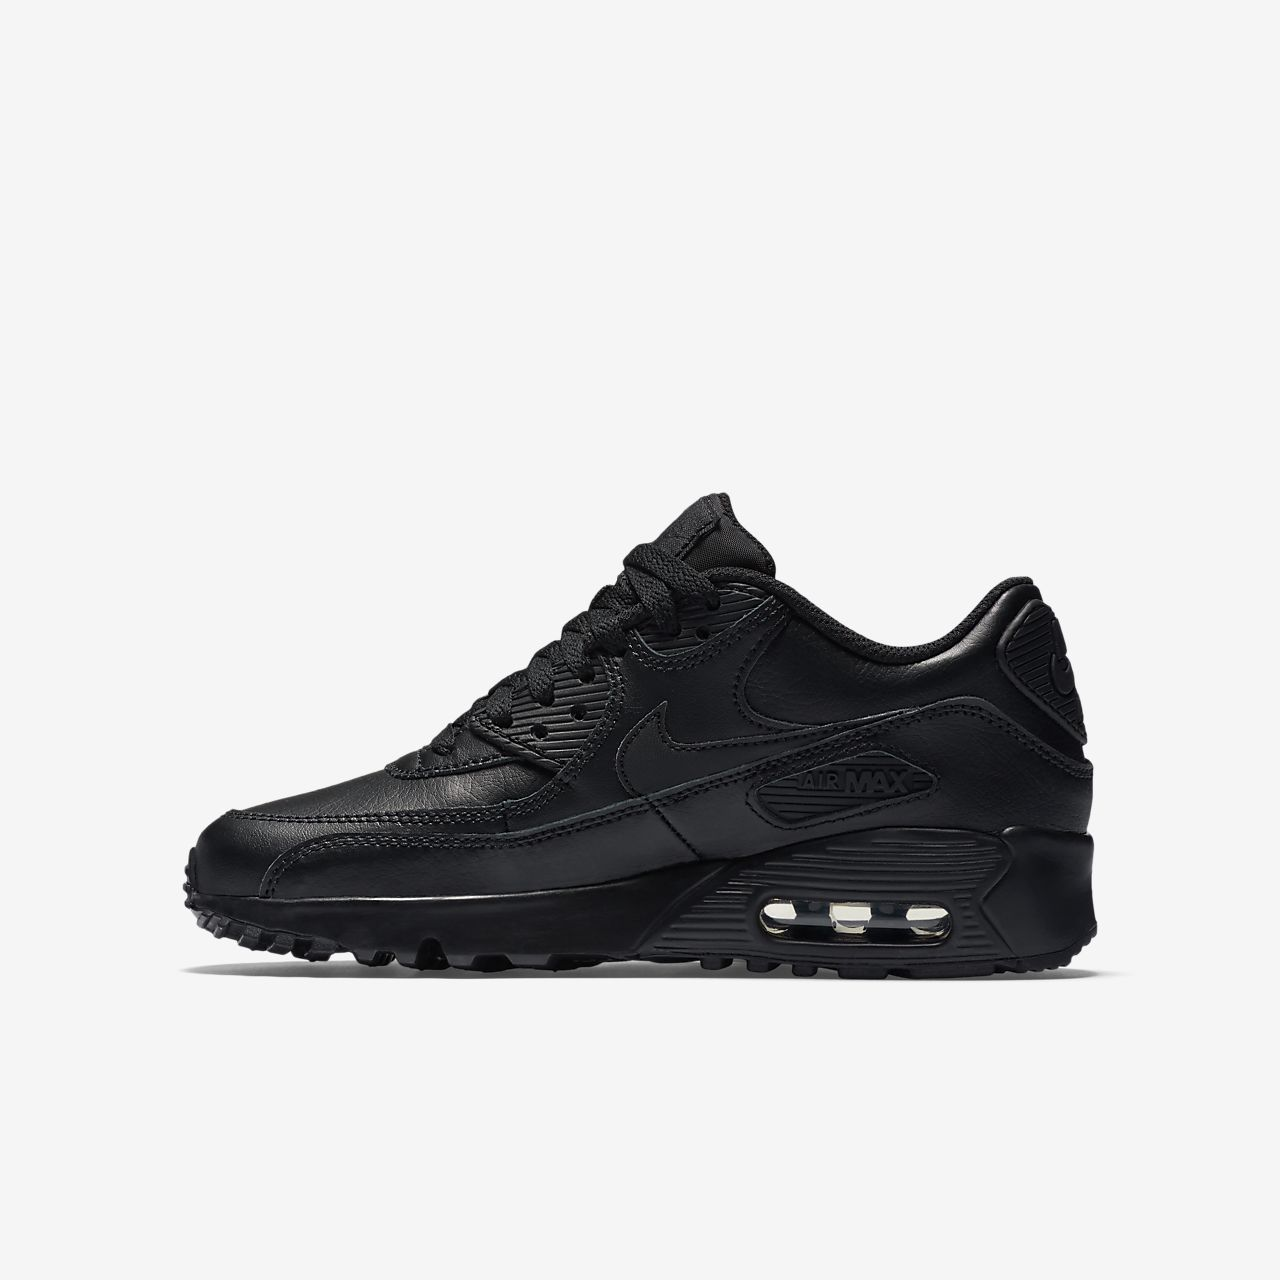 Nike Air Max 90 White Red Black Shoes,nike shoes for